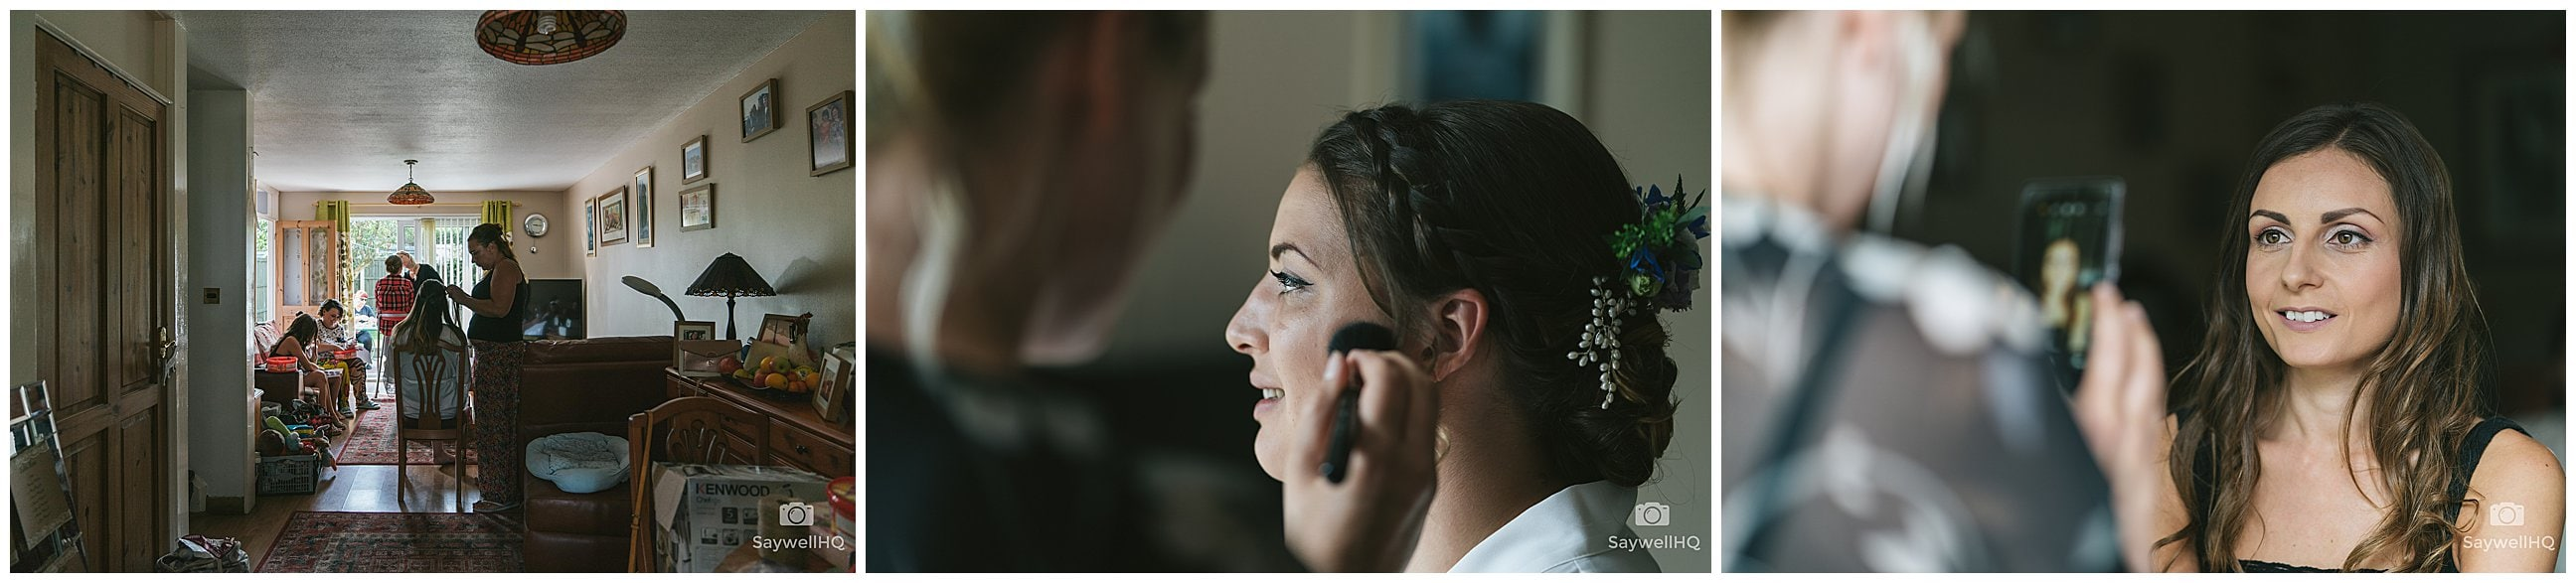 Swancar Farm Wedding Photography - bride and bridesmaids getting ready on the morning of the wedding